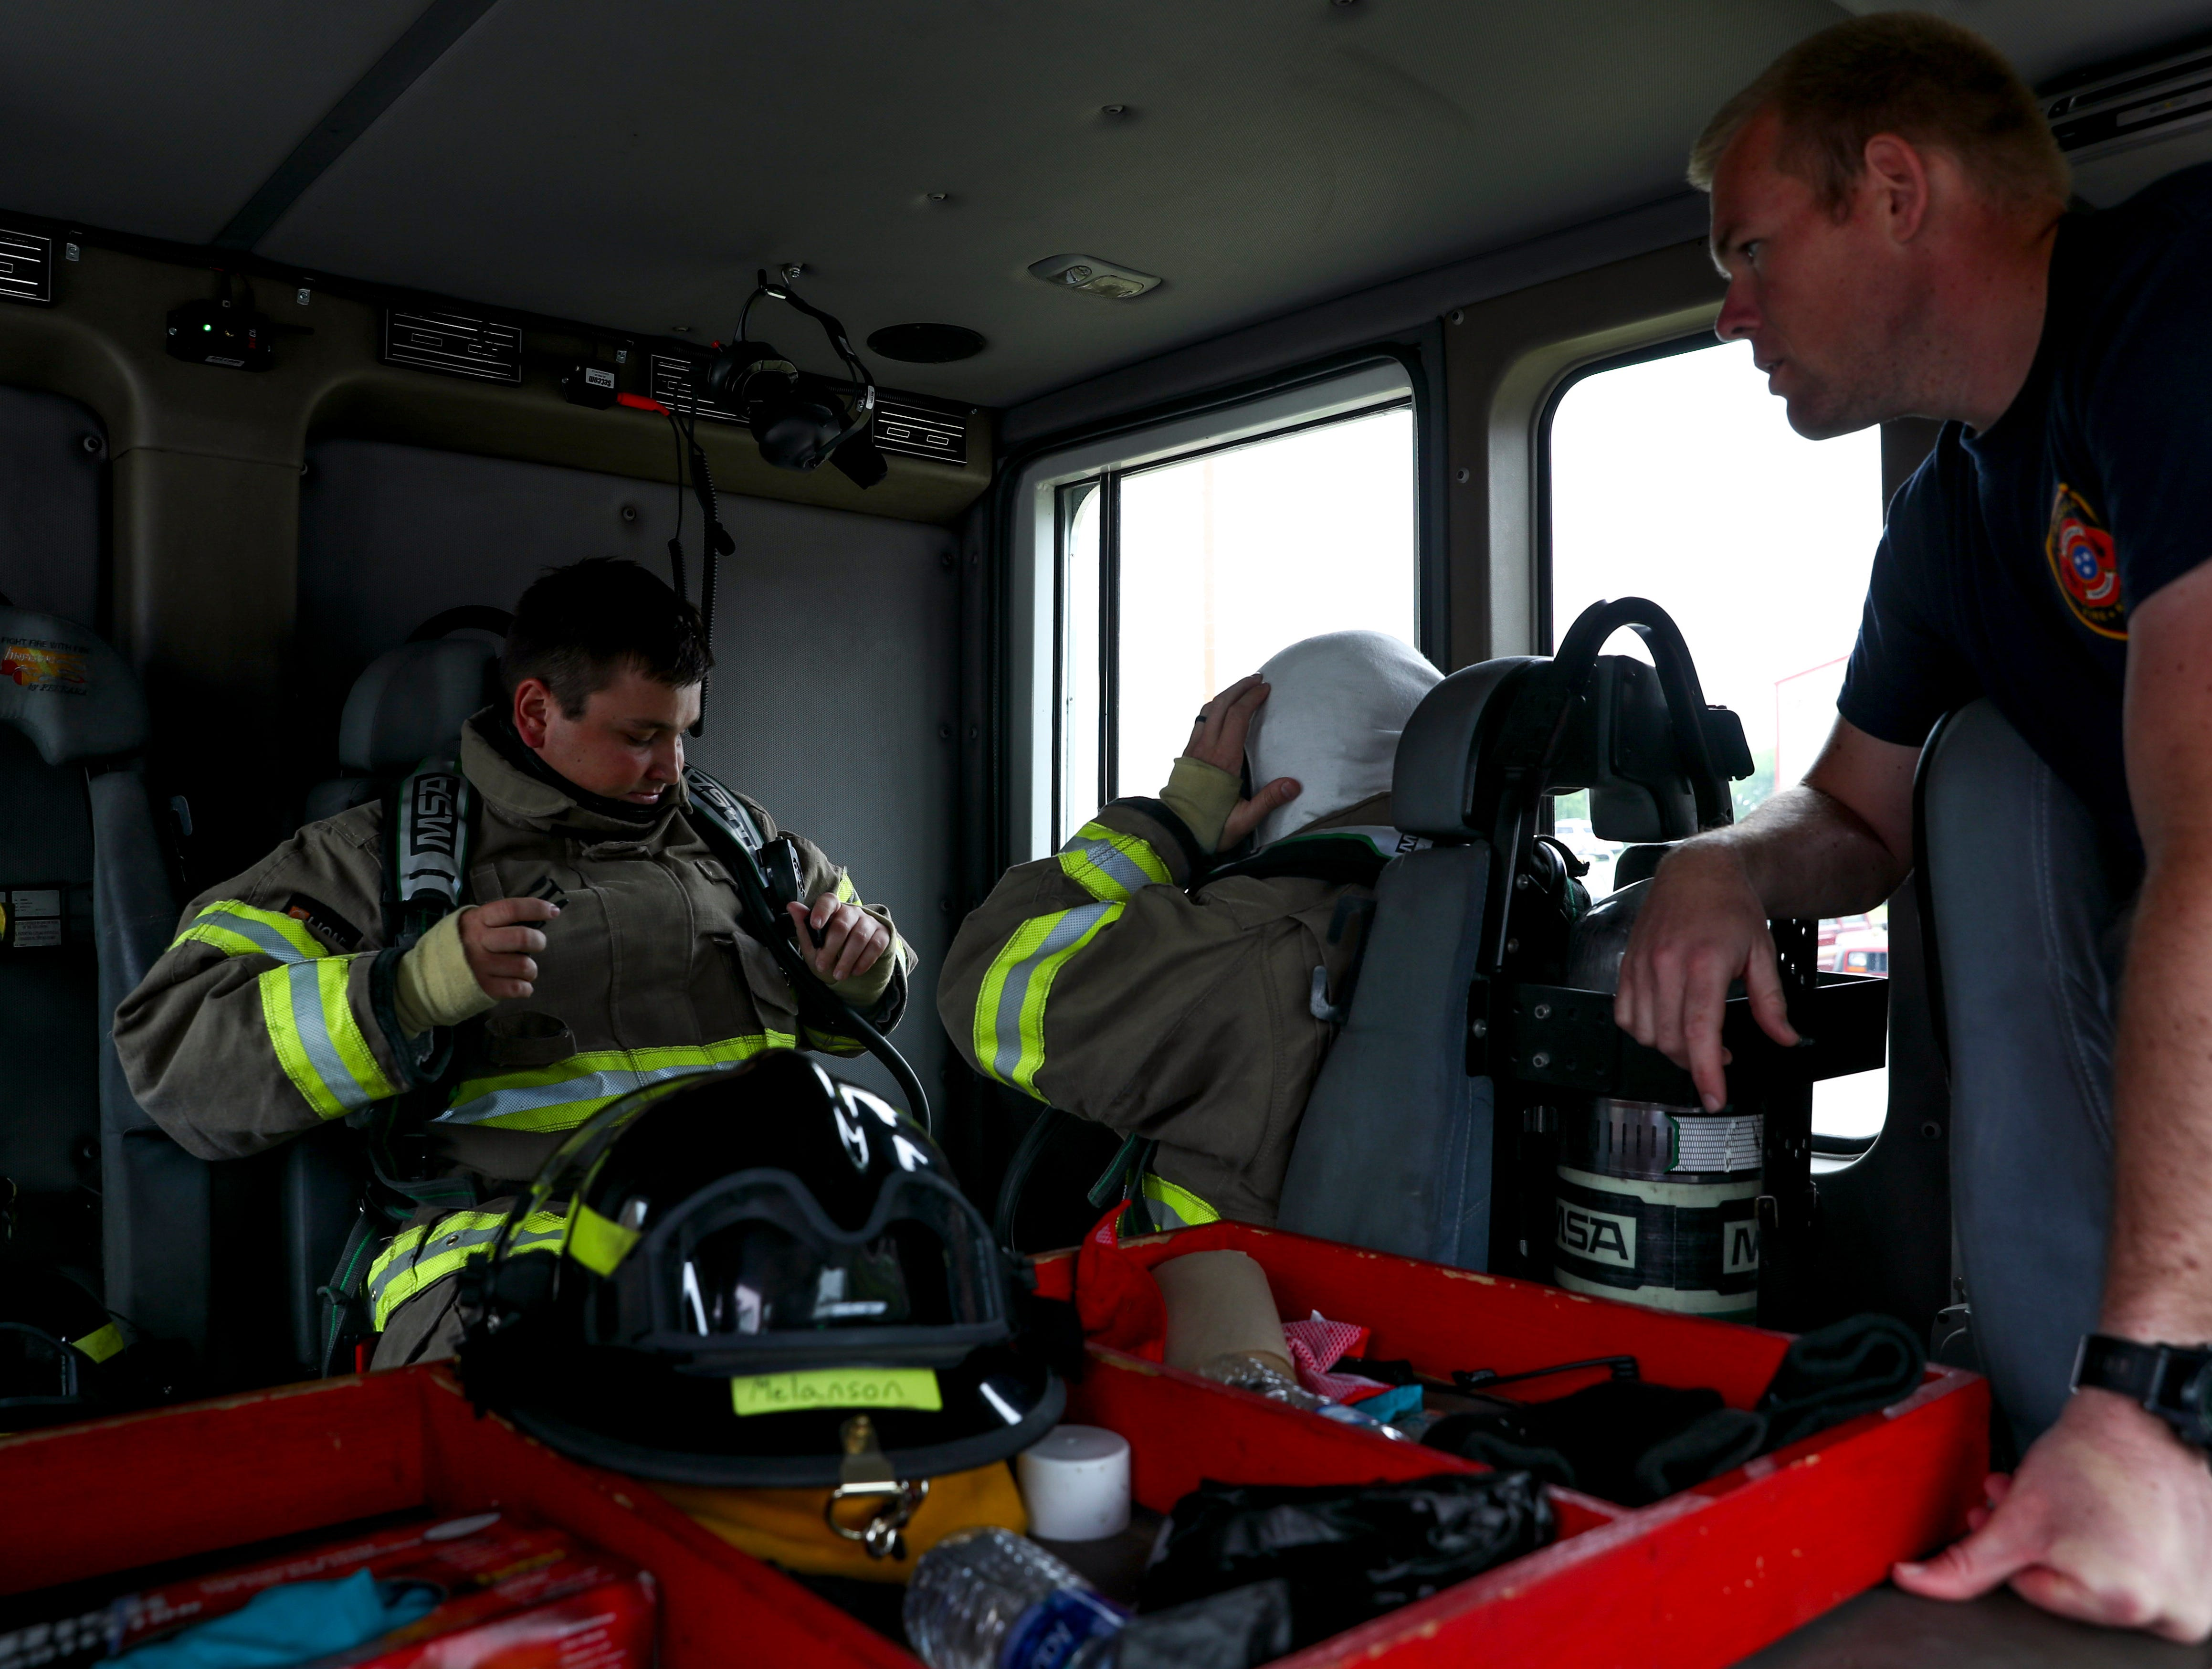 Blake Kiely checks his straps and all his equipment in the engine before riding to the live fire drill at Clarksville Fire Rescue in Clarksville, Tenn., on Friday, May 10, 2019.